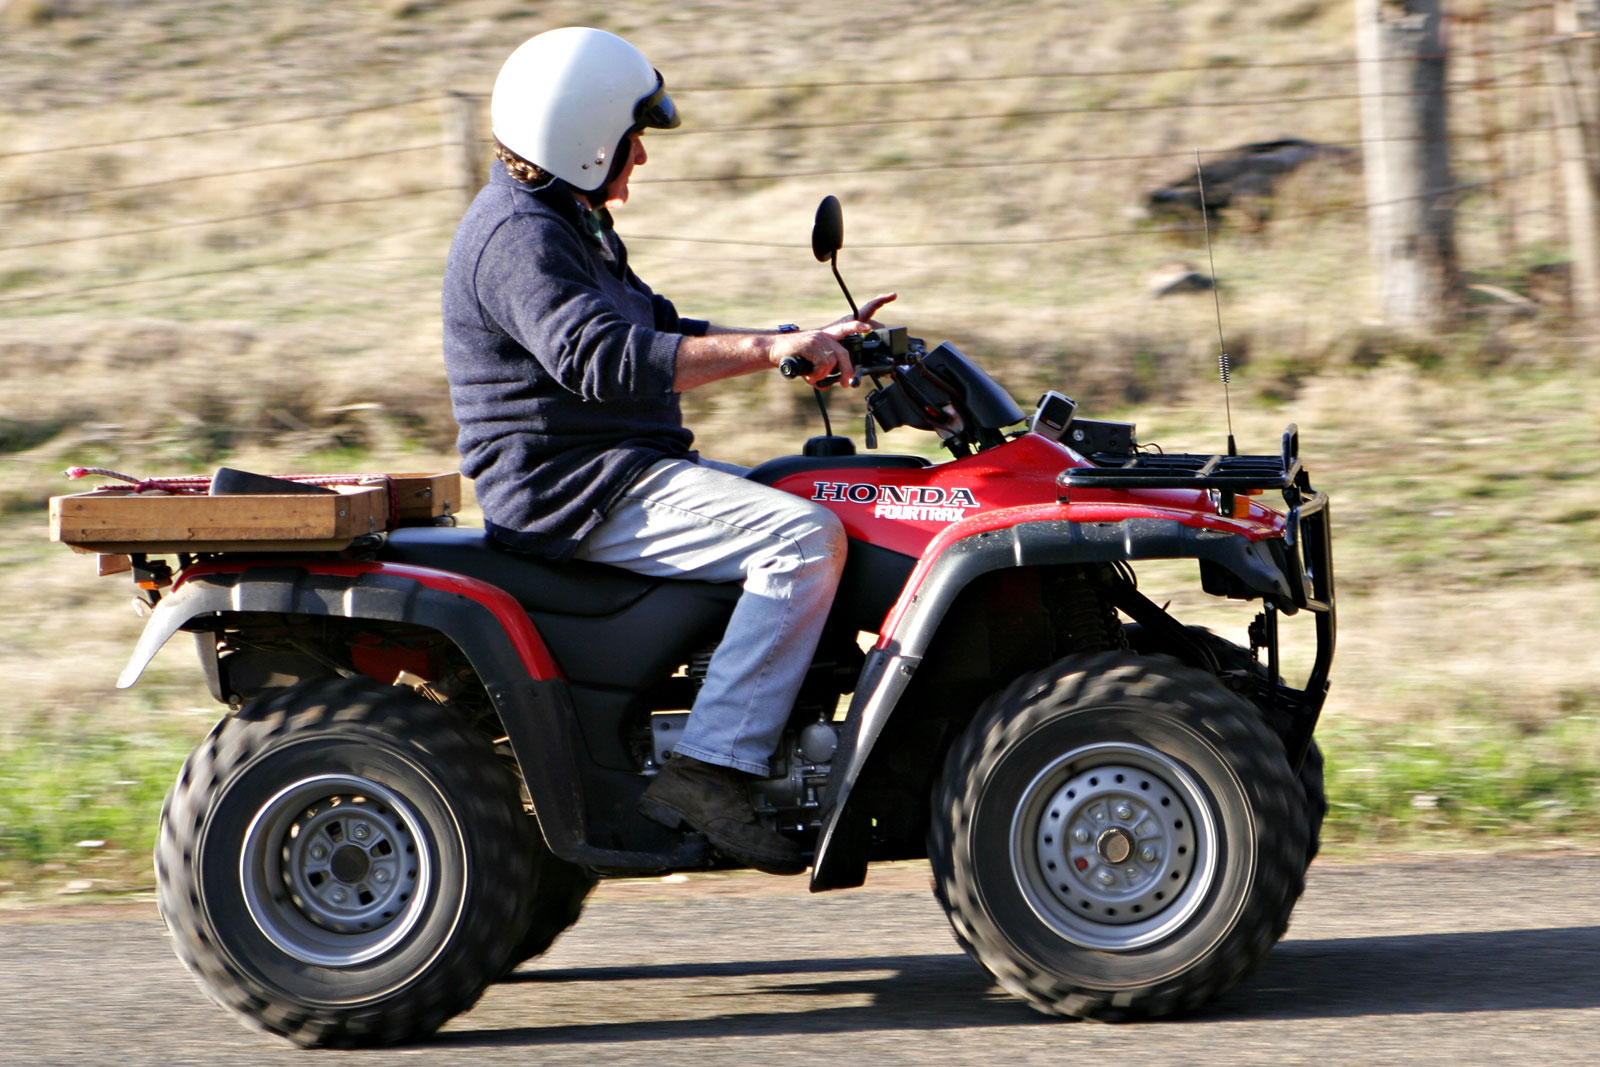 external image Four_wheeler.jpg